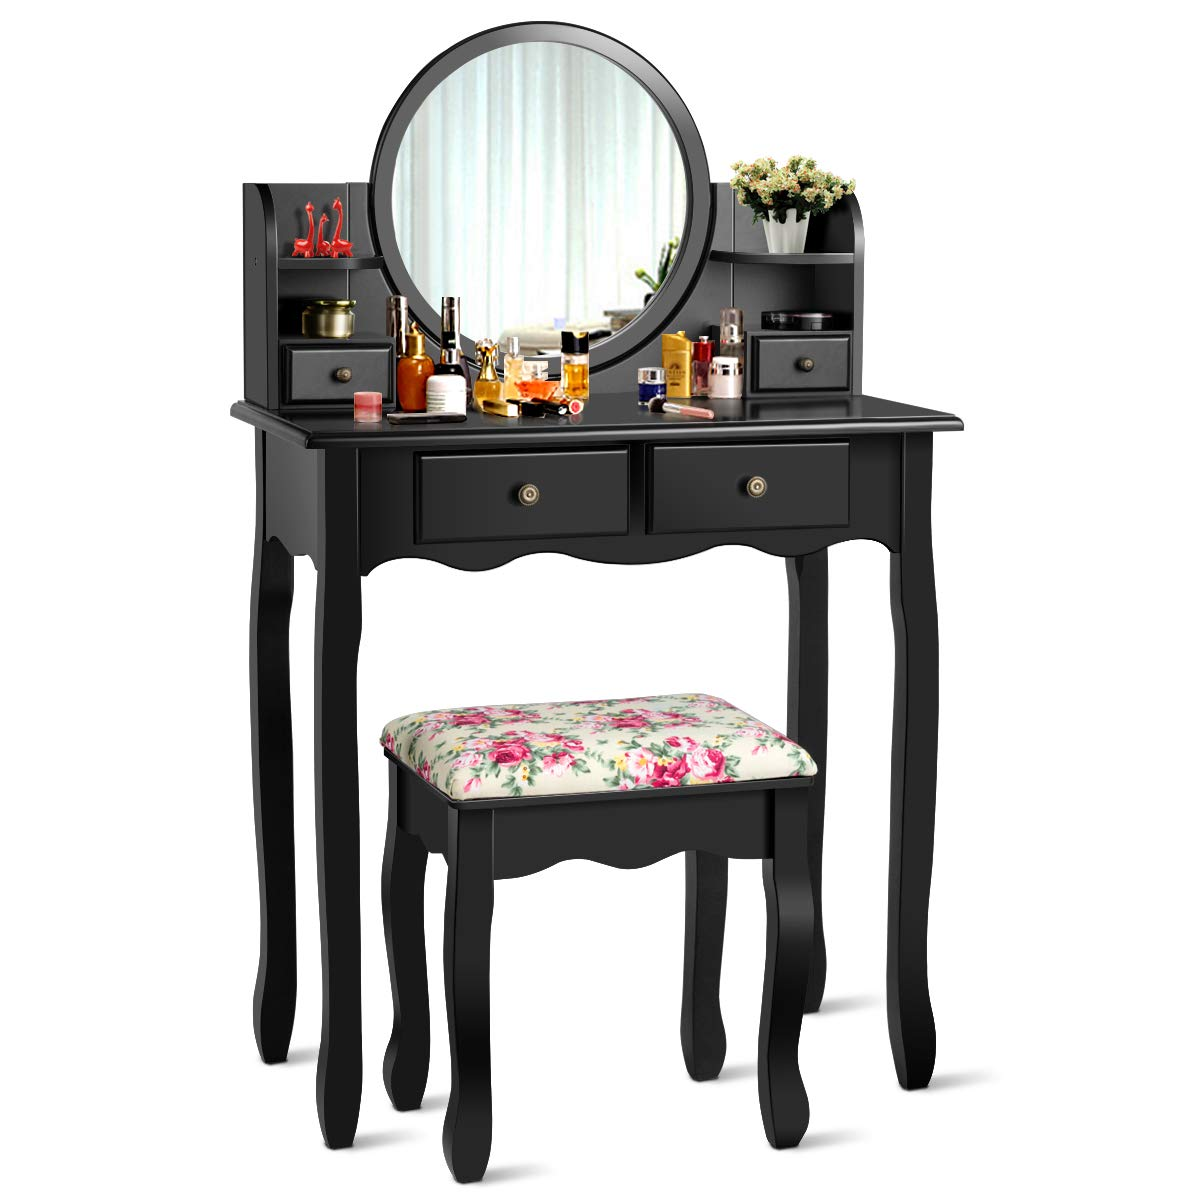 CHARMAID Vanity Set with 4 Storage Shelves and 4 Drawers, Makeup Table with 360 Pivoted Round Mirror and Makeup Organizers, Dressing Table with Mirror and Cushioned Stool for Women Girls Black